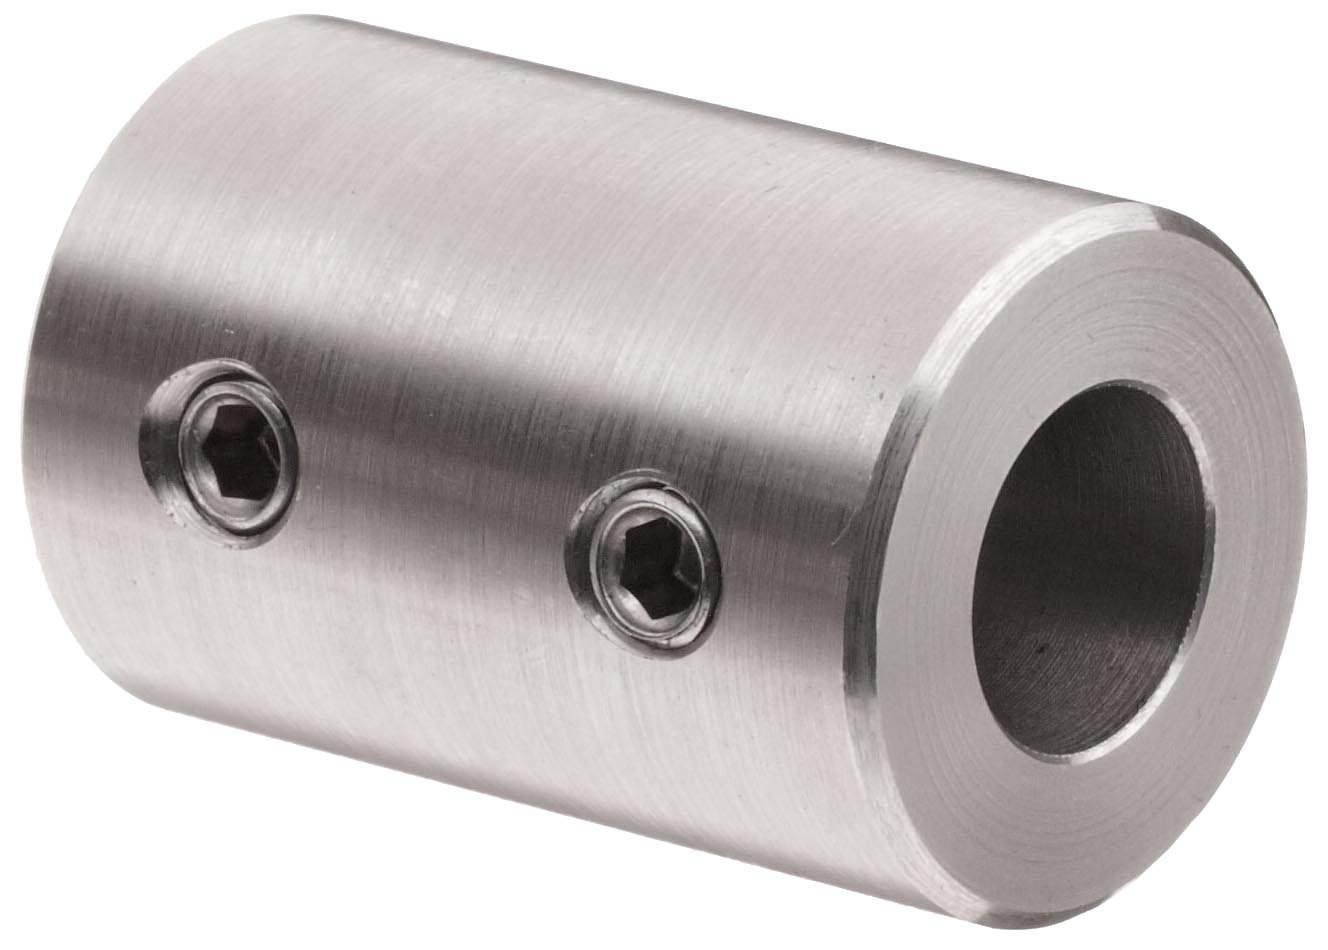 "Nice Boston Gear CR12 Shaft Coupling, Rigid (One Piece) Type, 0.75"" Bore, 1.500"" Outside Diameter, 2.000"" Overall Length"